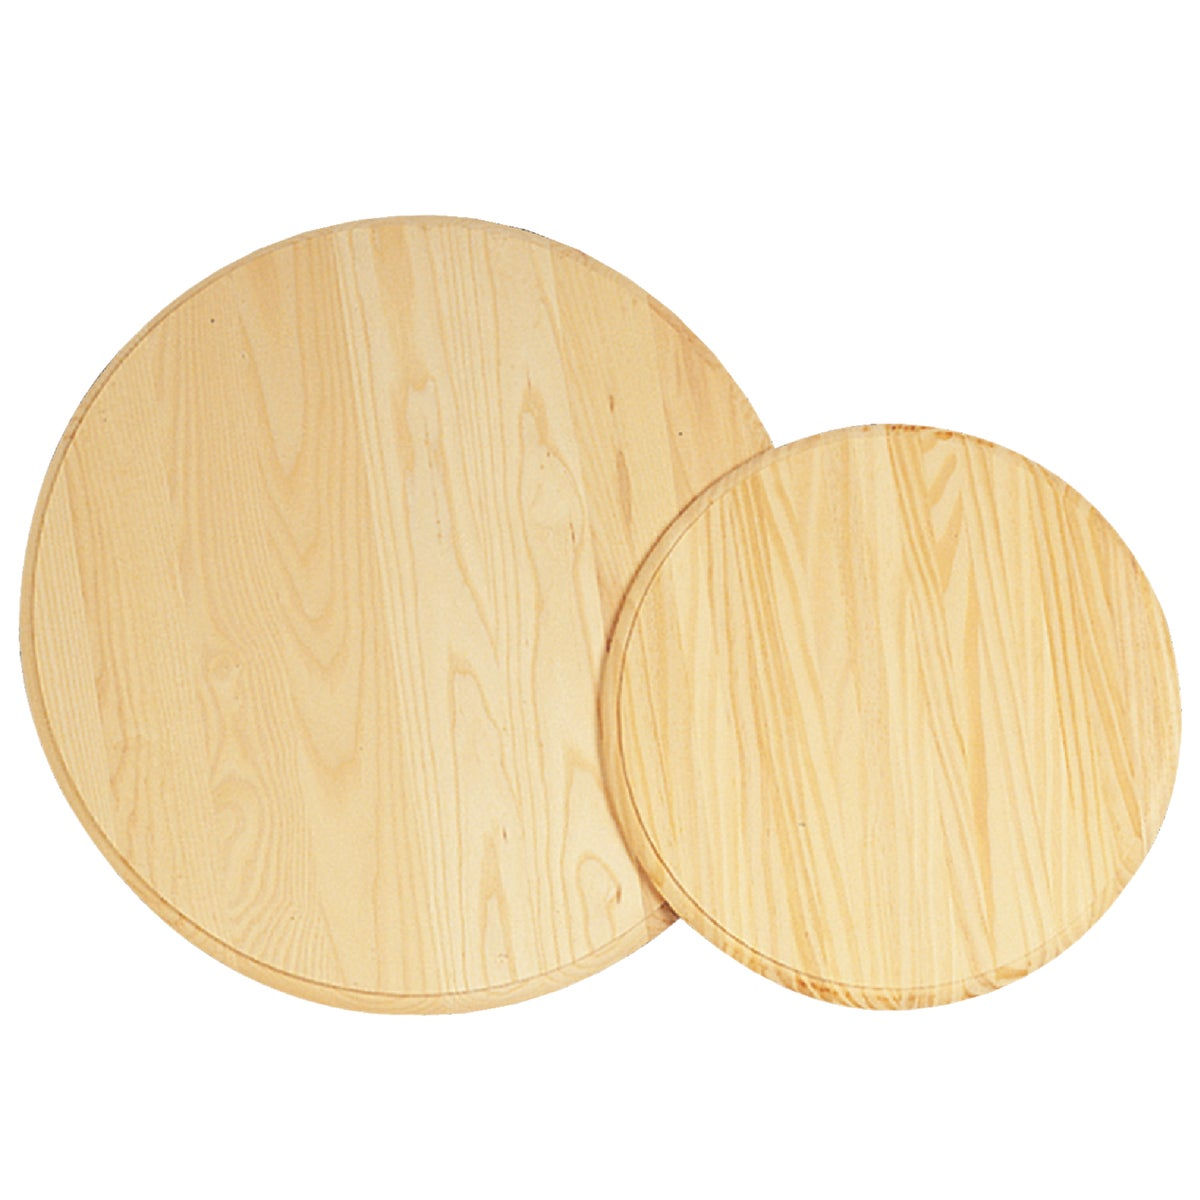 "21-3/4"" ROUND TABLE TOP"